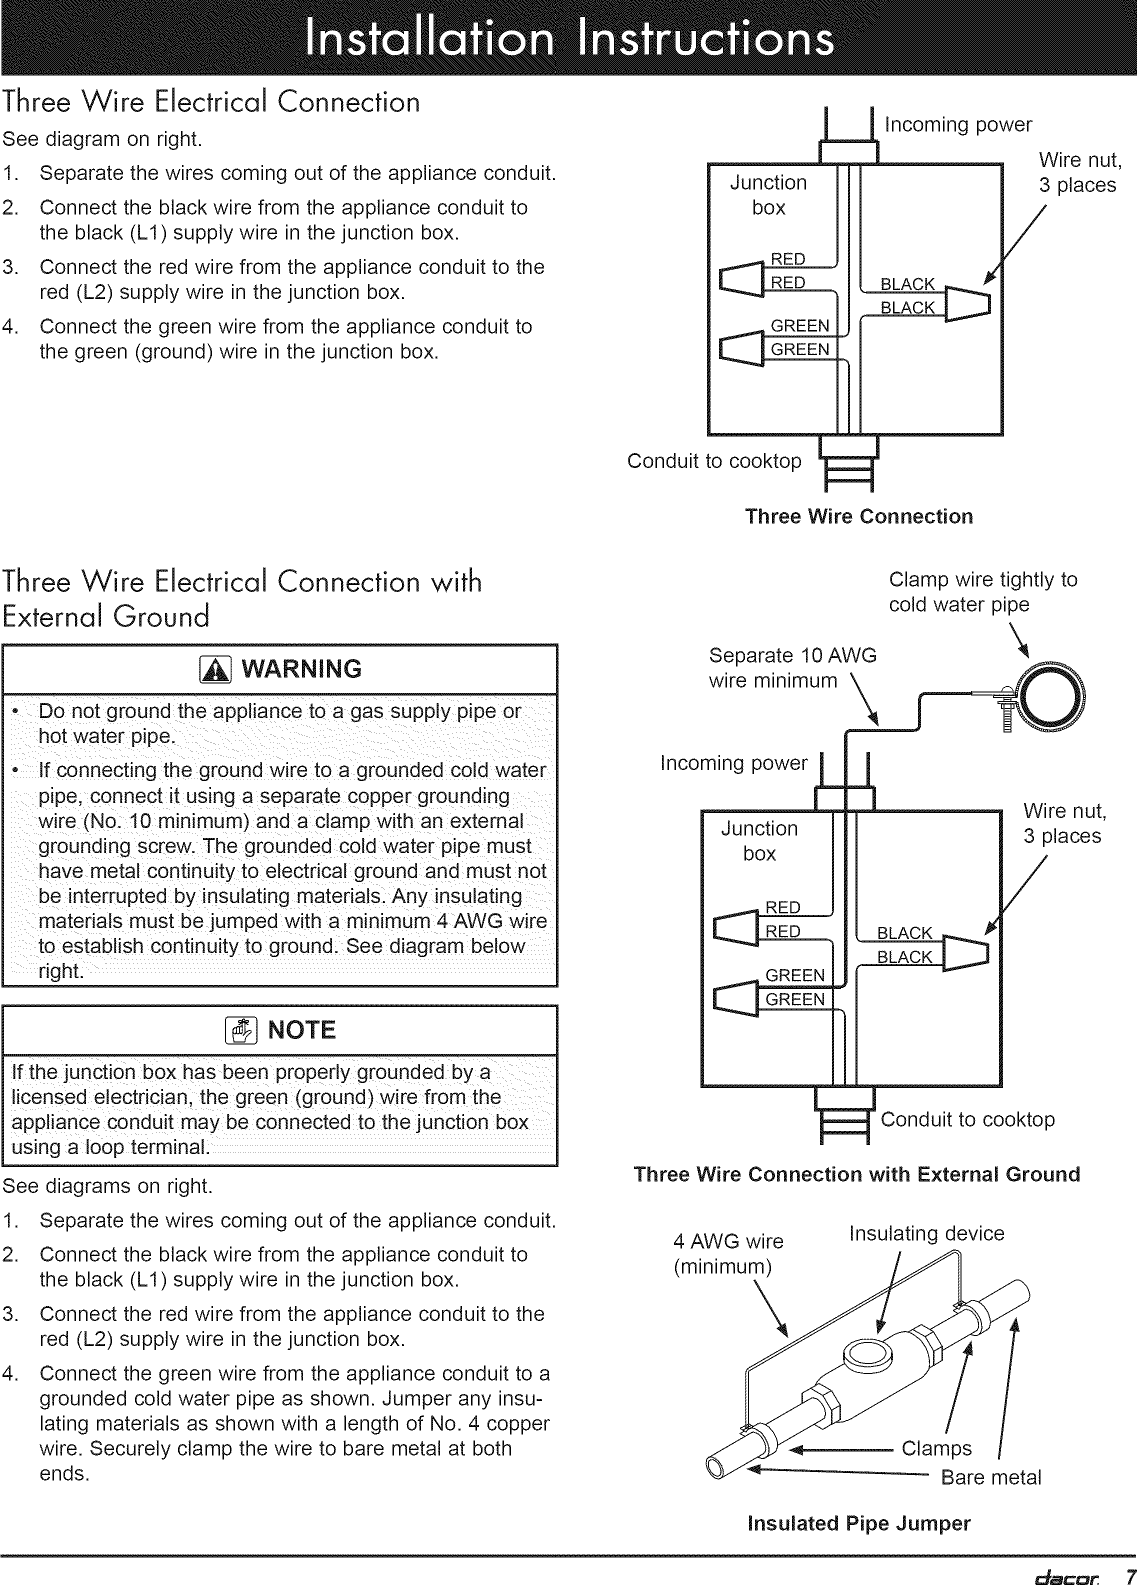 Garmin Striker 4 User Guide - Wiring Diagram And Schematics on